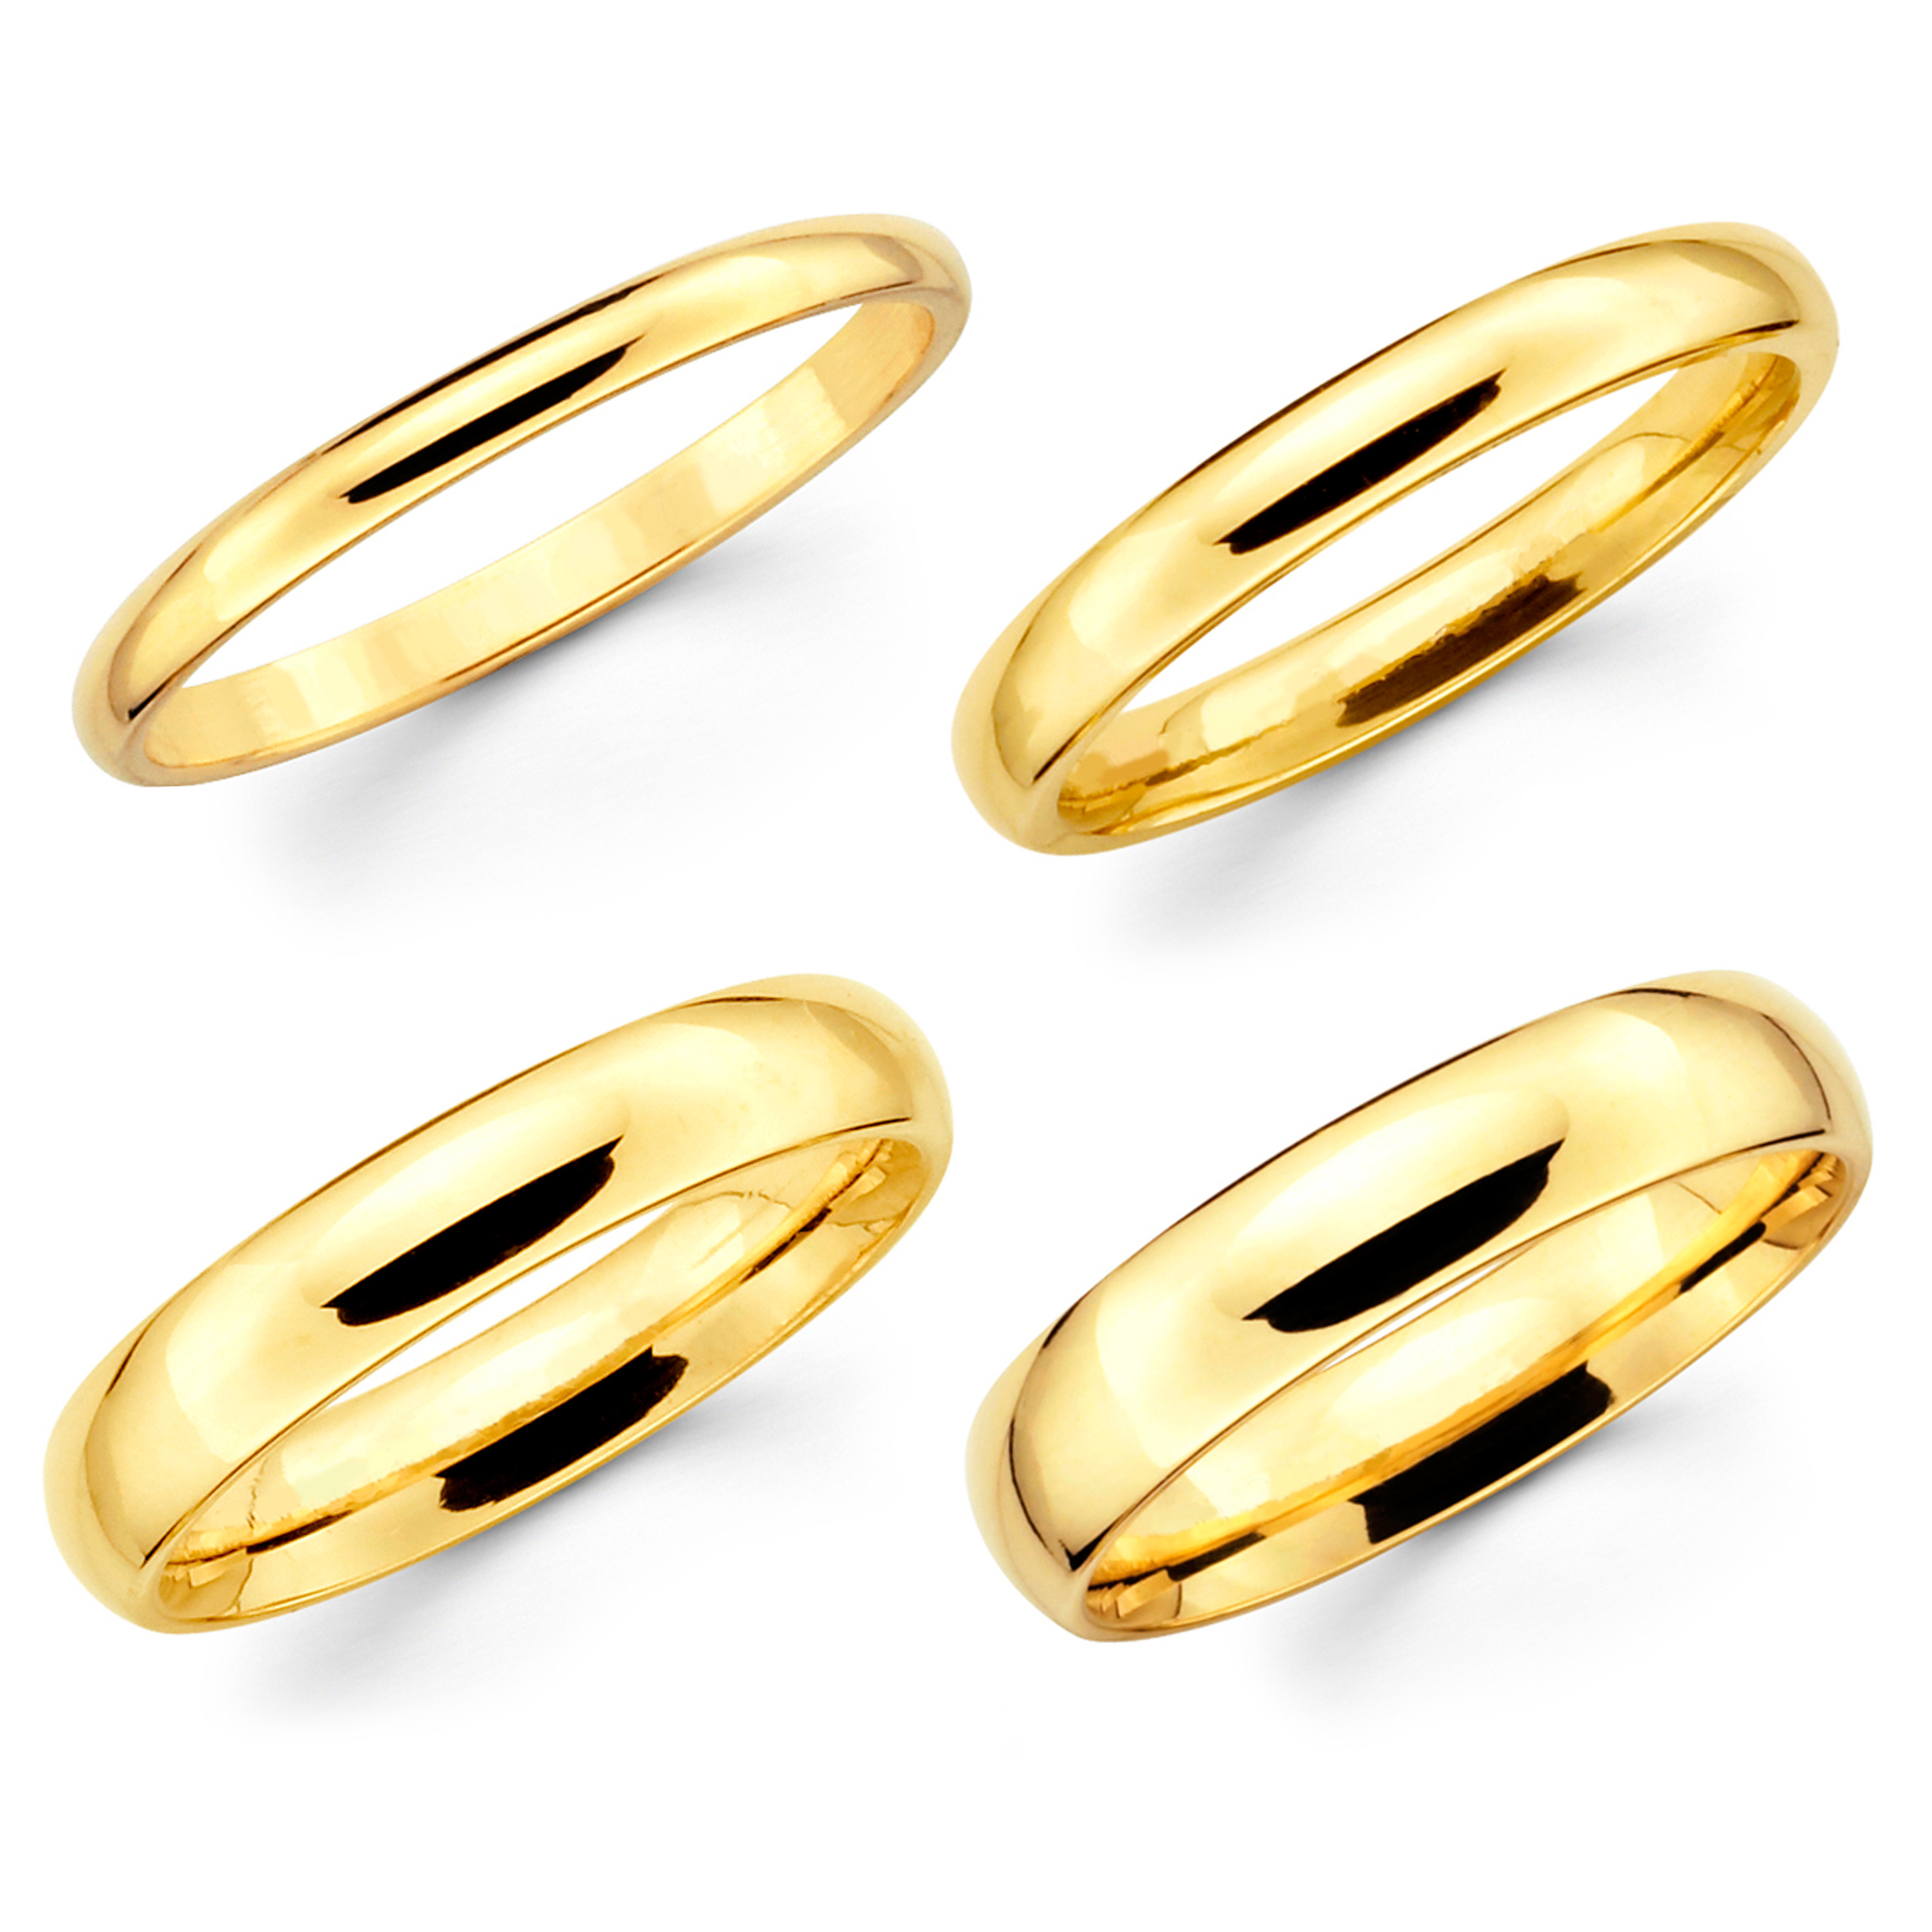 yellow ladies men women comfort gold bands wedding band ring itm fit solid